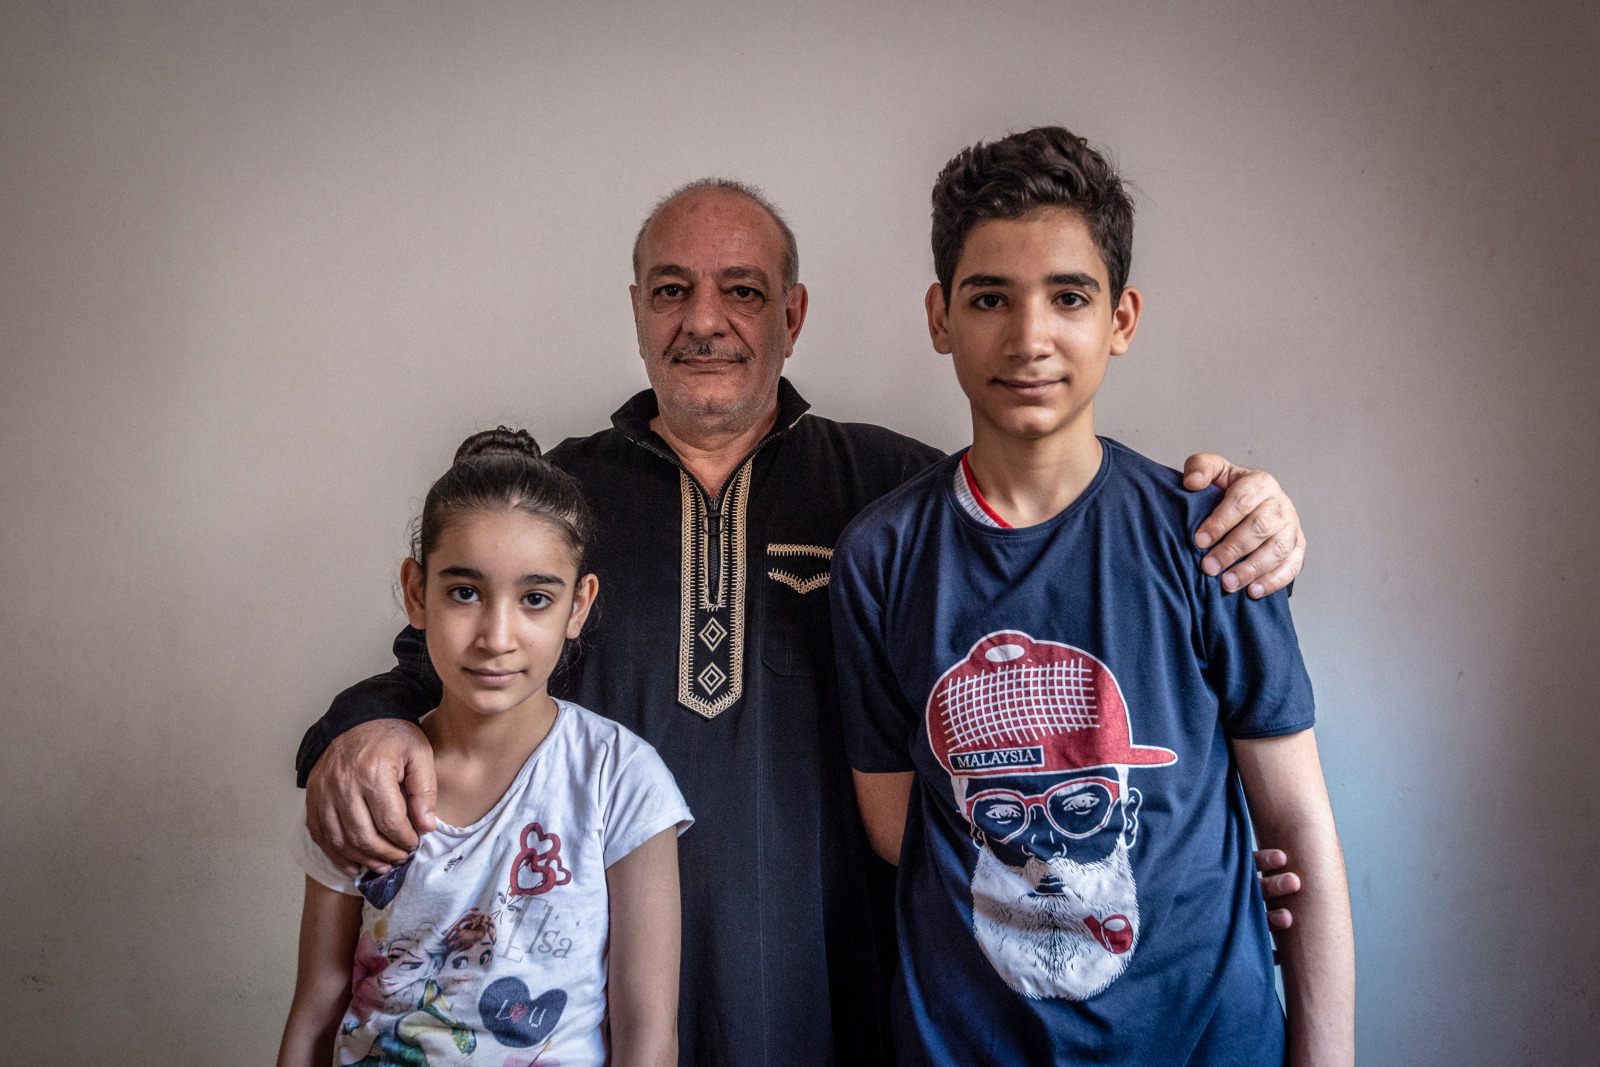 Kamal and his family, Syrian refugees that fled to Jordan